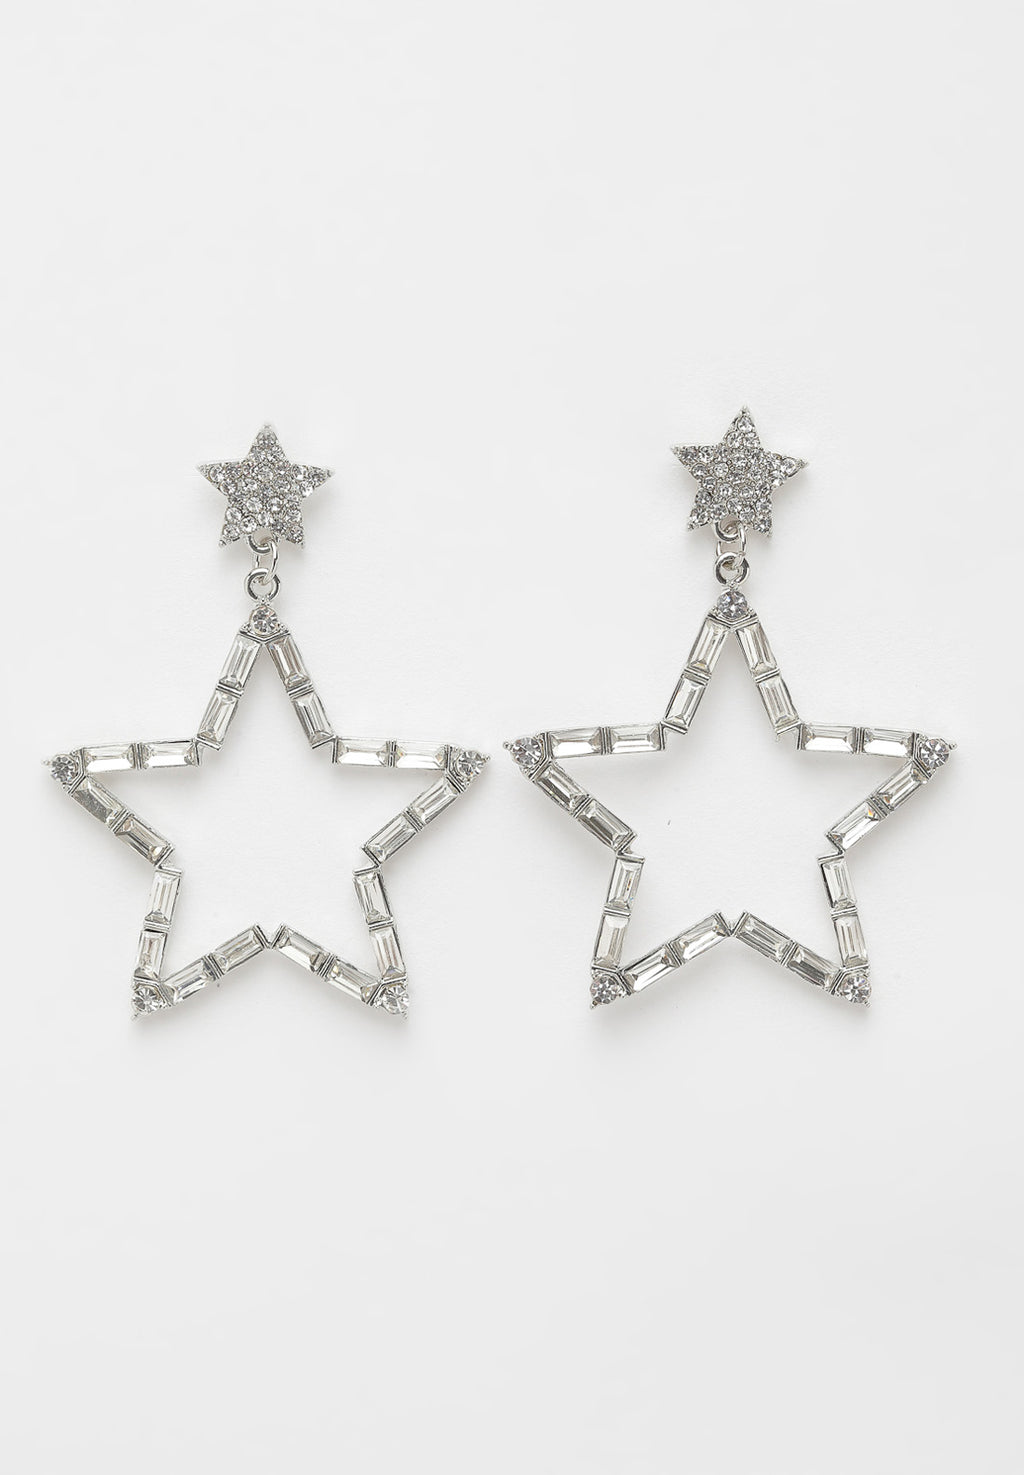 Avant-Garde Paris Silver Star Crystal Earrings